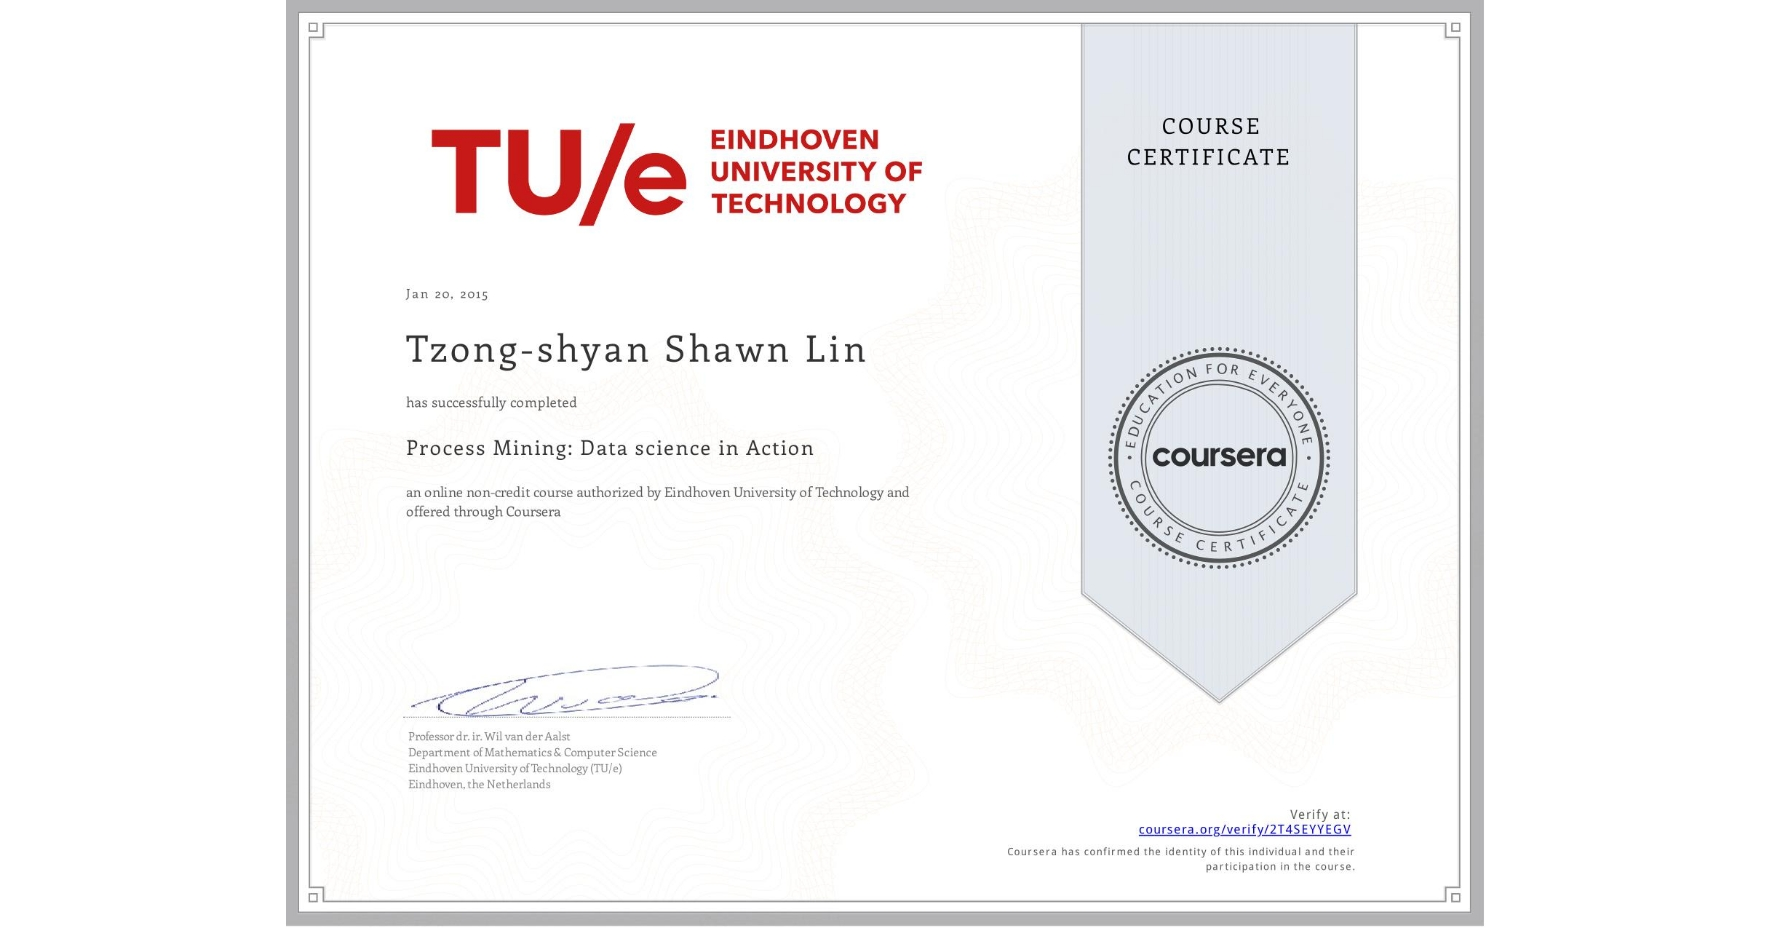 View certificate for Tzong-shyan Shawn Lin, Process Mining: Data science in Action, an online non-credit course authorized by Eindhoven University of Technology and offered through Coursera